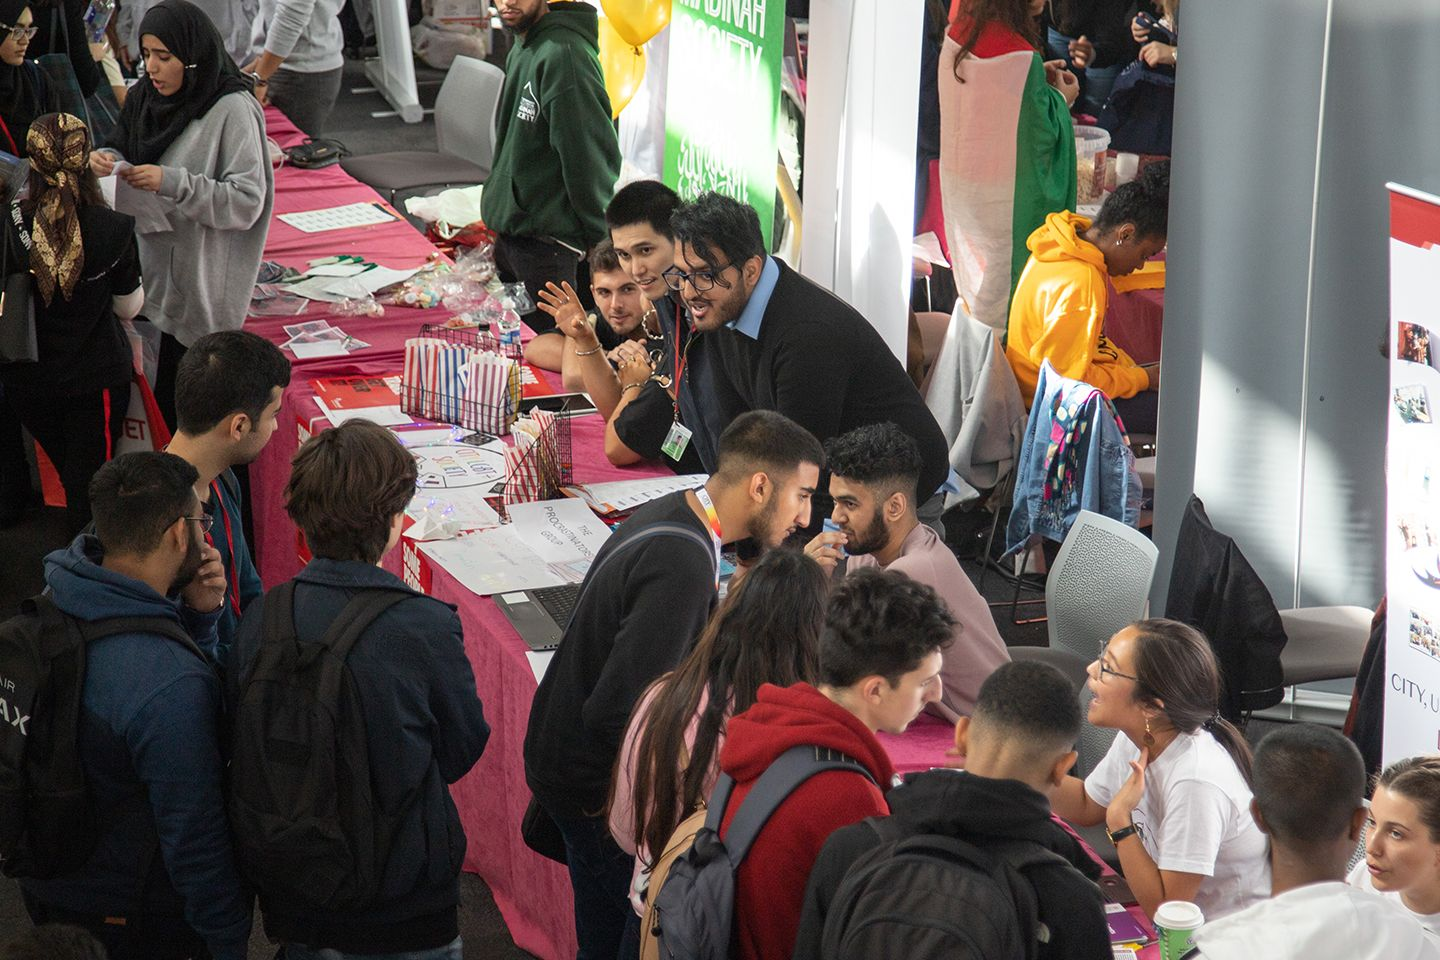 new students speaking face to face to clubs and societies member's at freshers fair